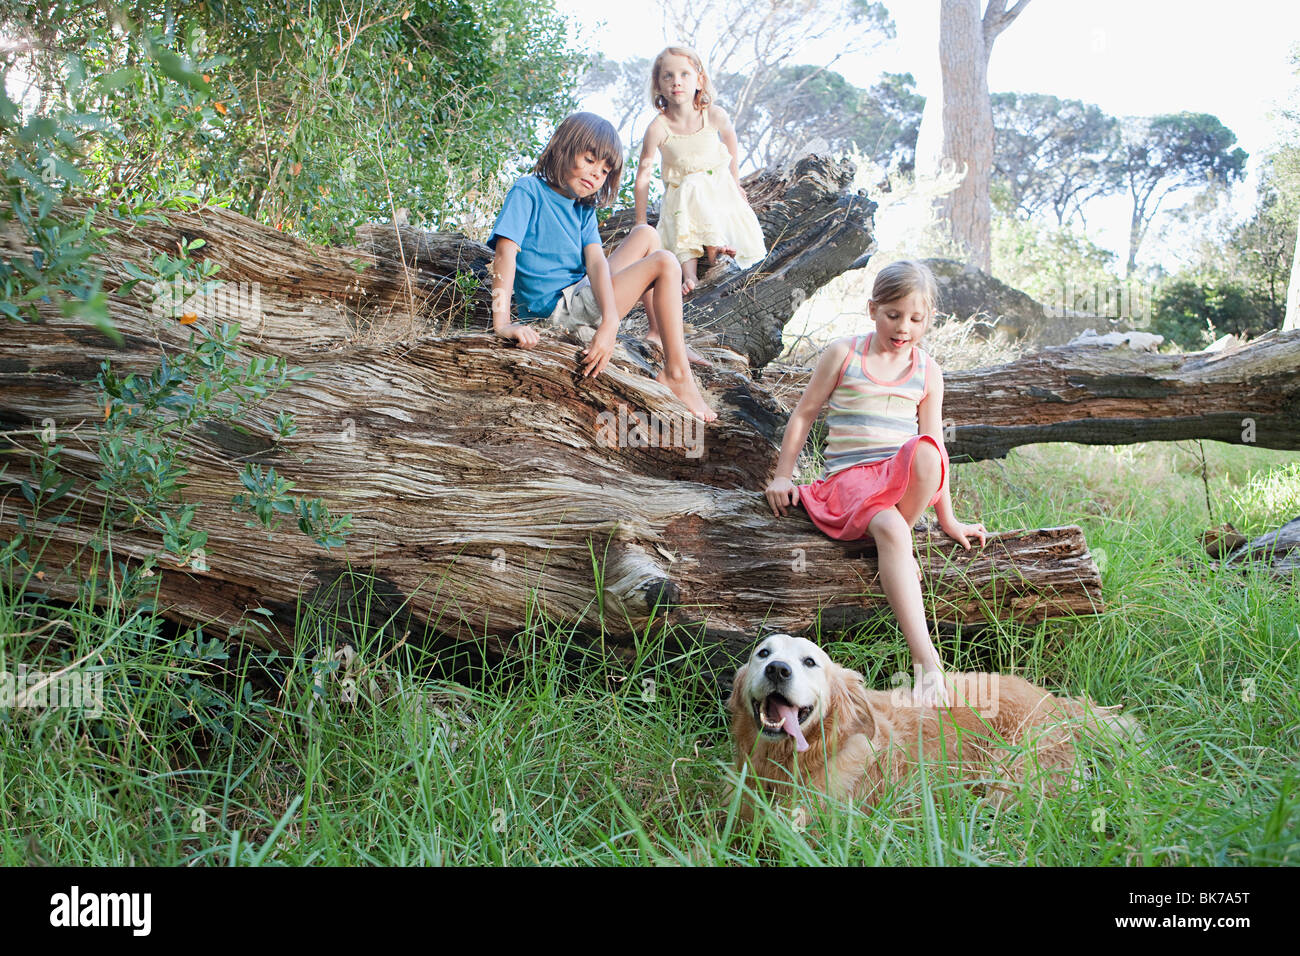 Children on a tree trunk with golden retriever - Stock Image